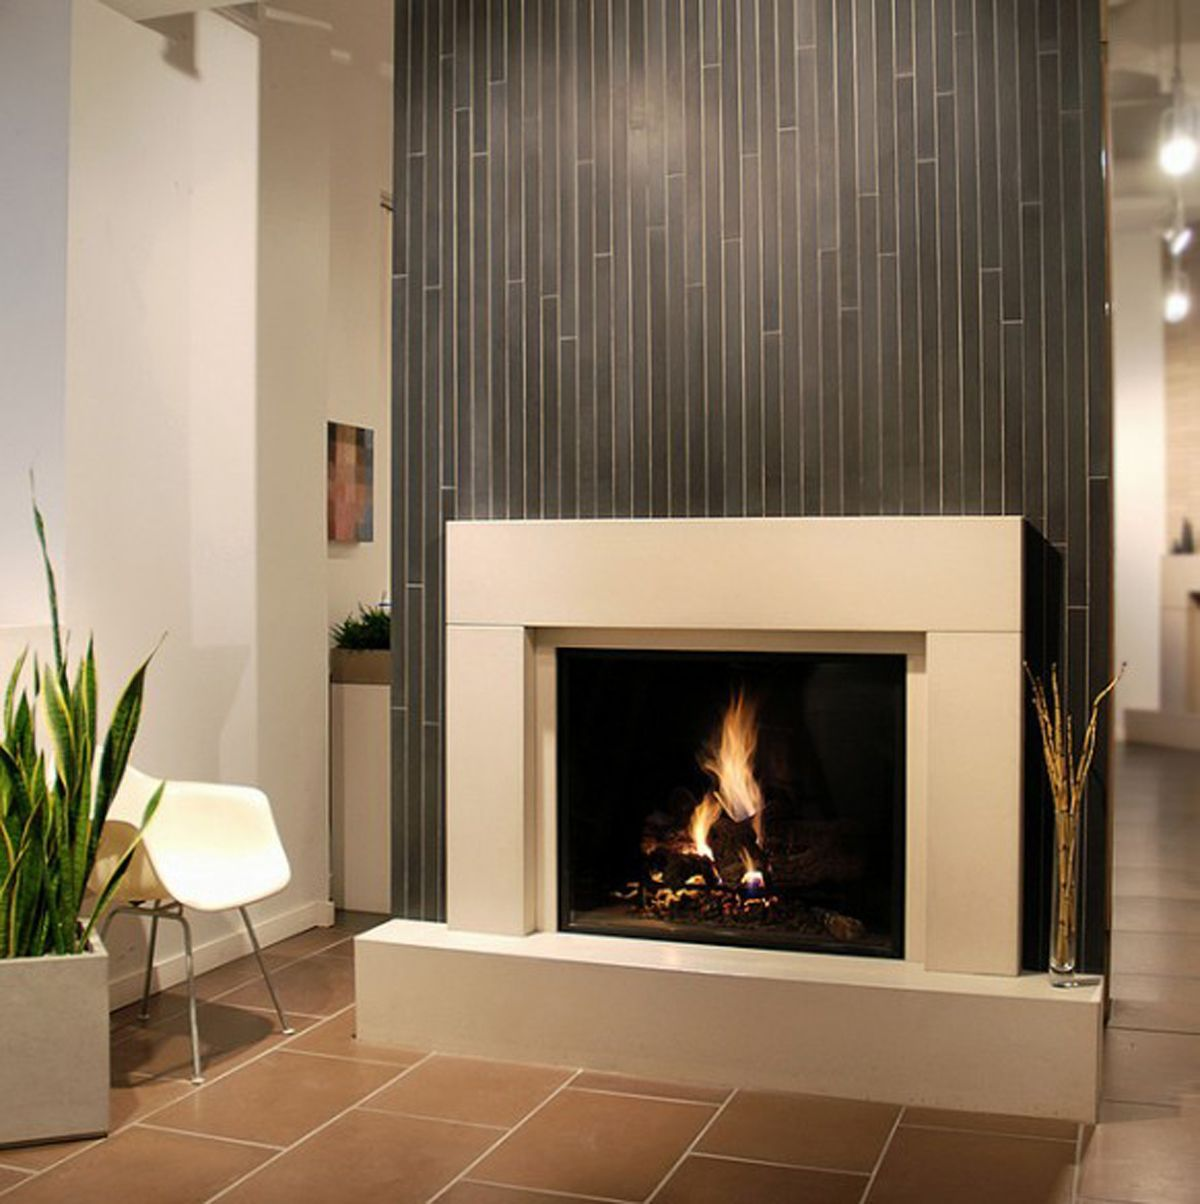 25 Stunning Fireplace Ideas to Steal | Modern stone fireplace, Stone ...